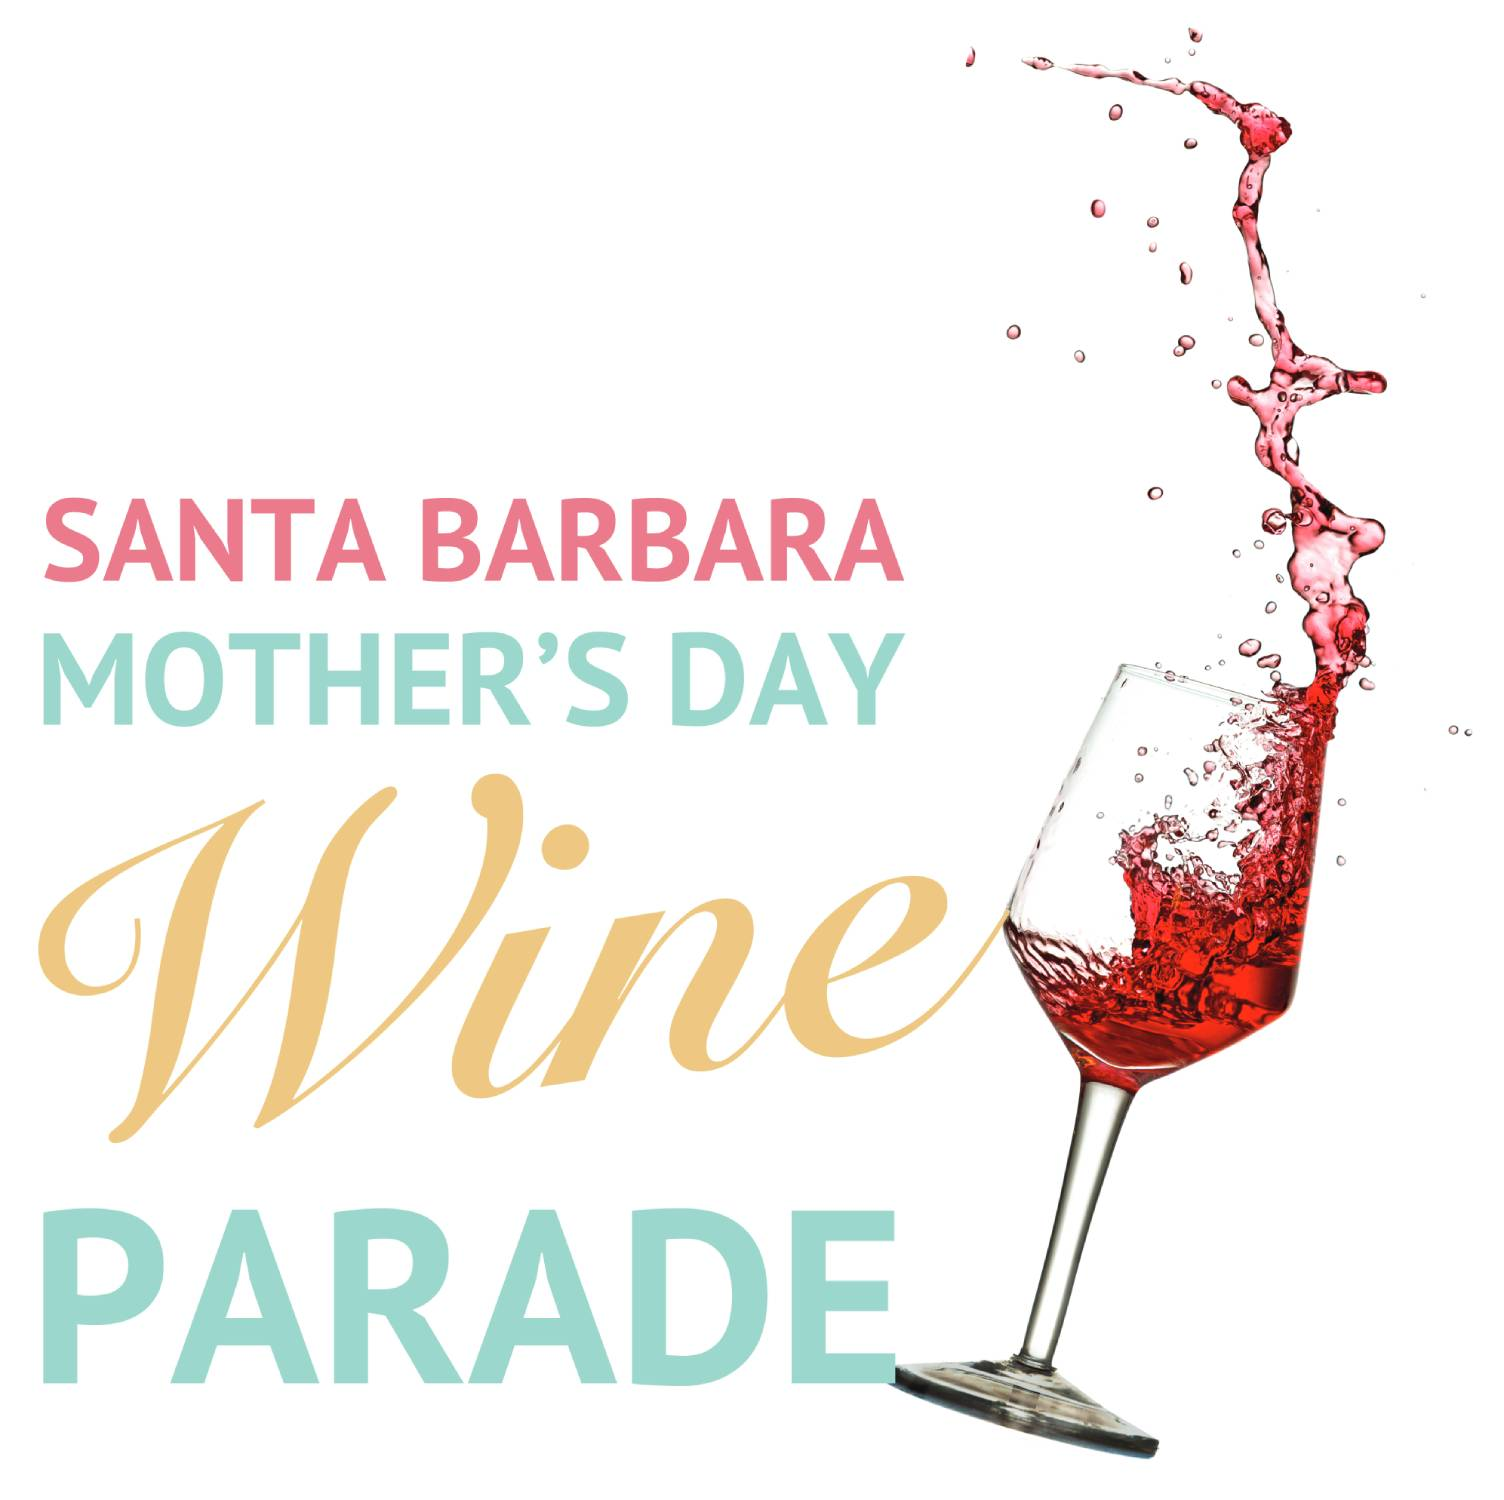 2019 Santa Barbara Mother's Day Wine Parade